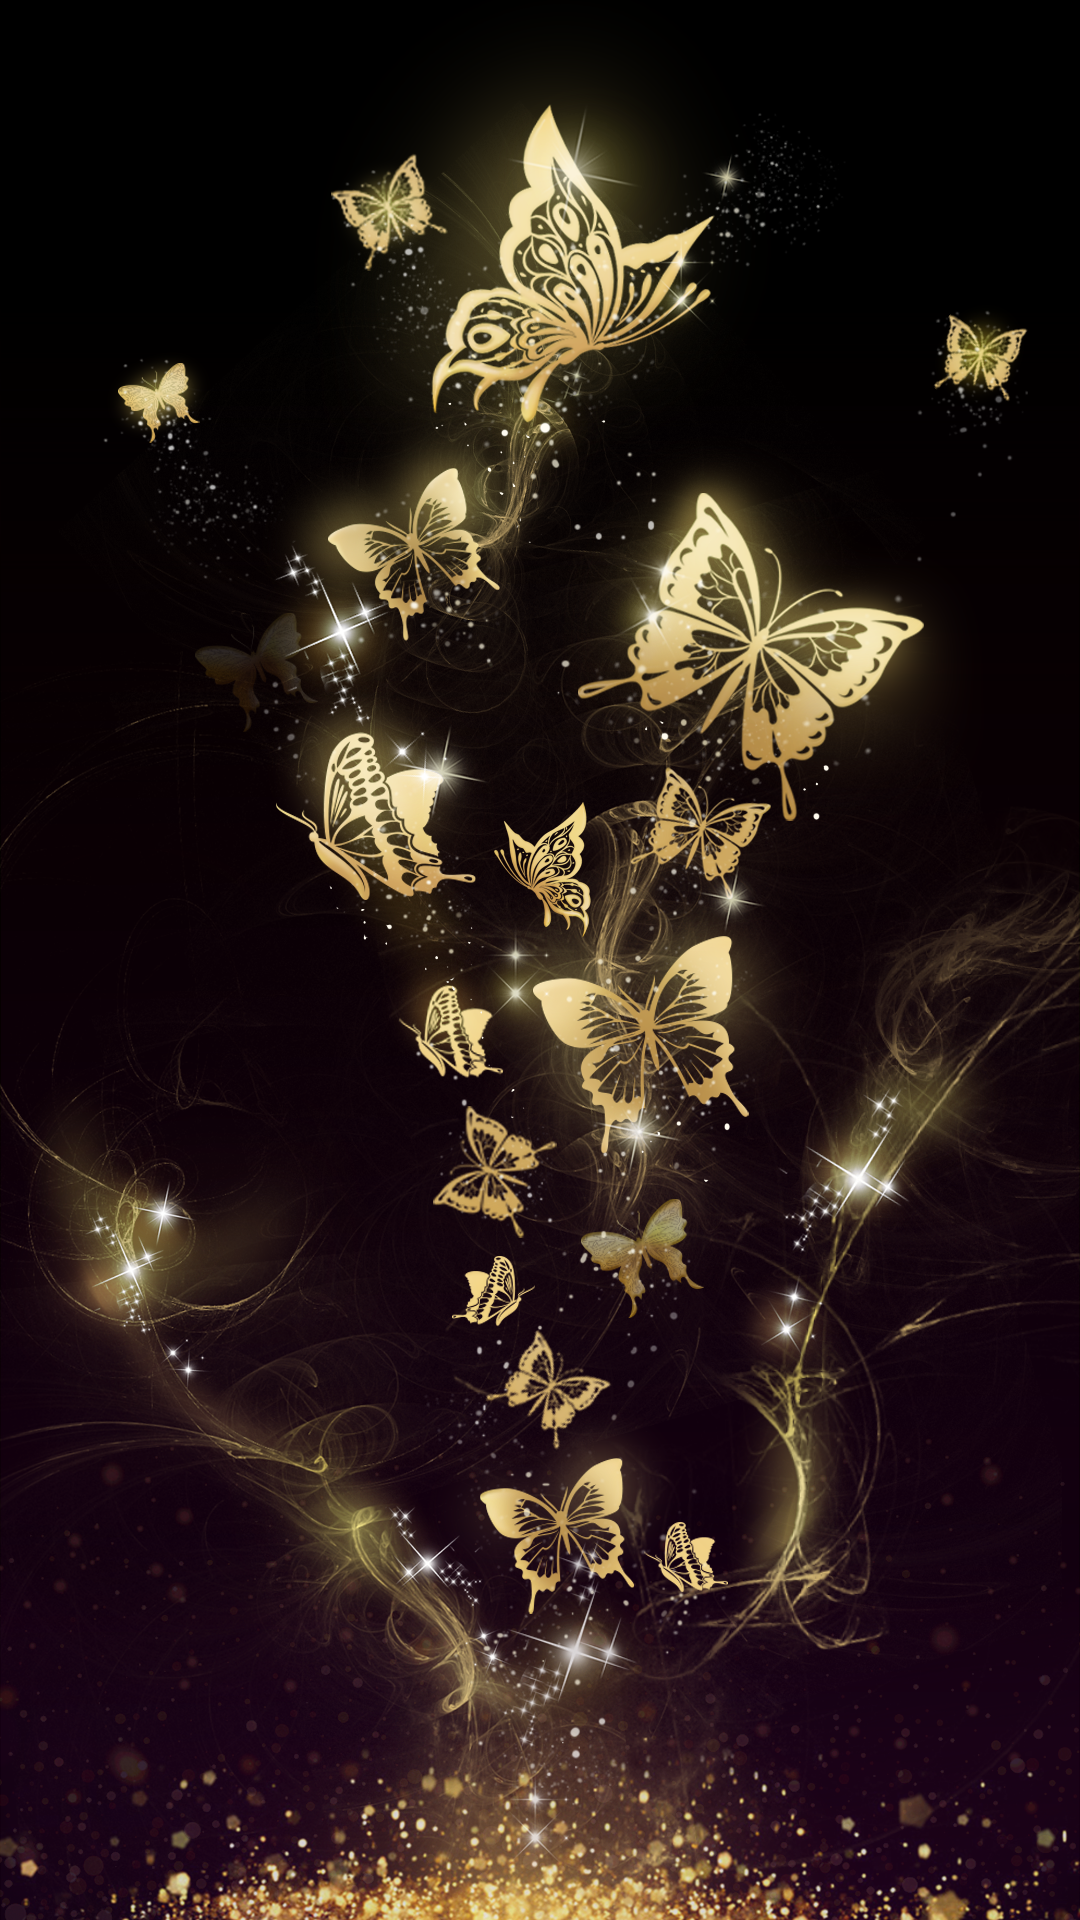 Beautiful golden butterfly live wallpaper! Android live